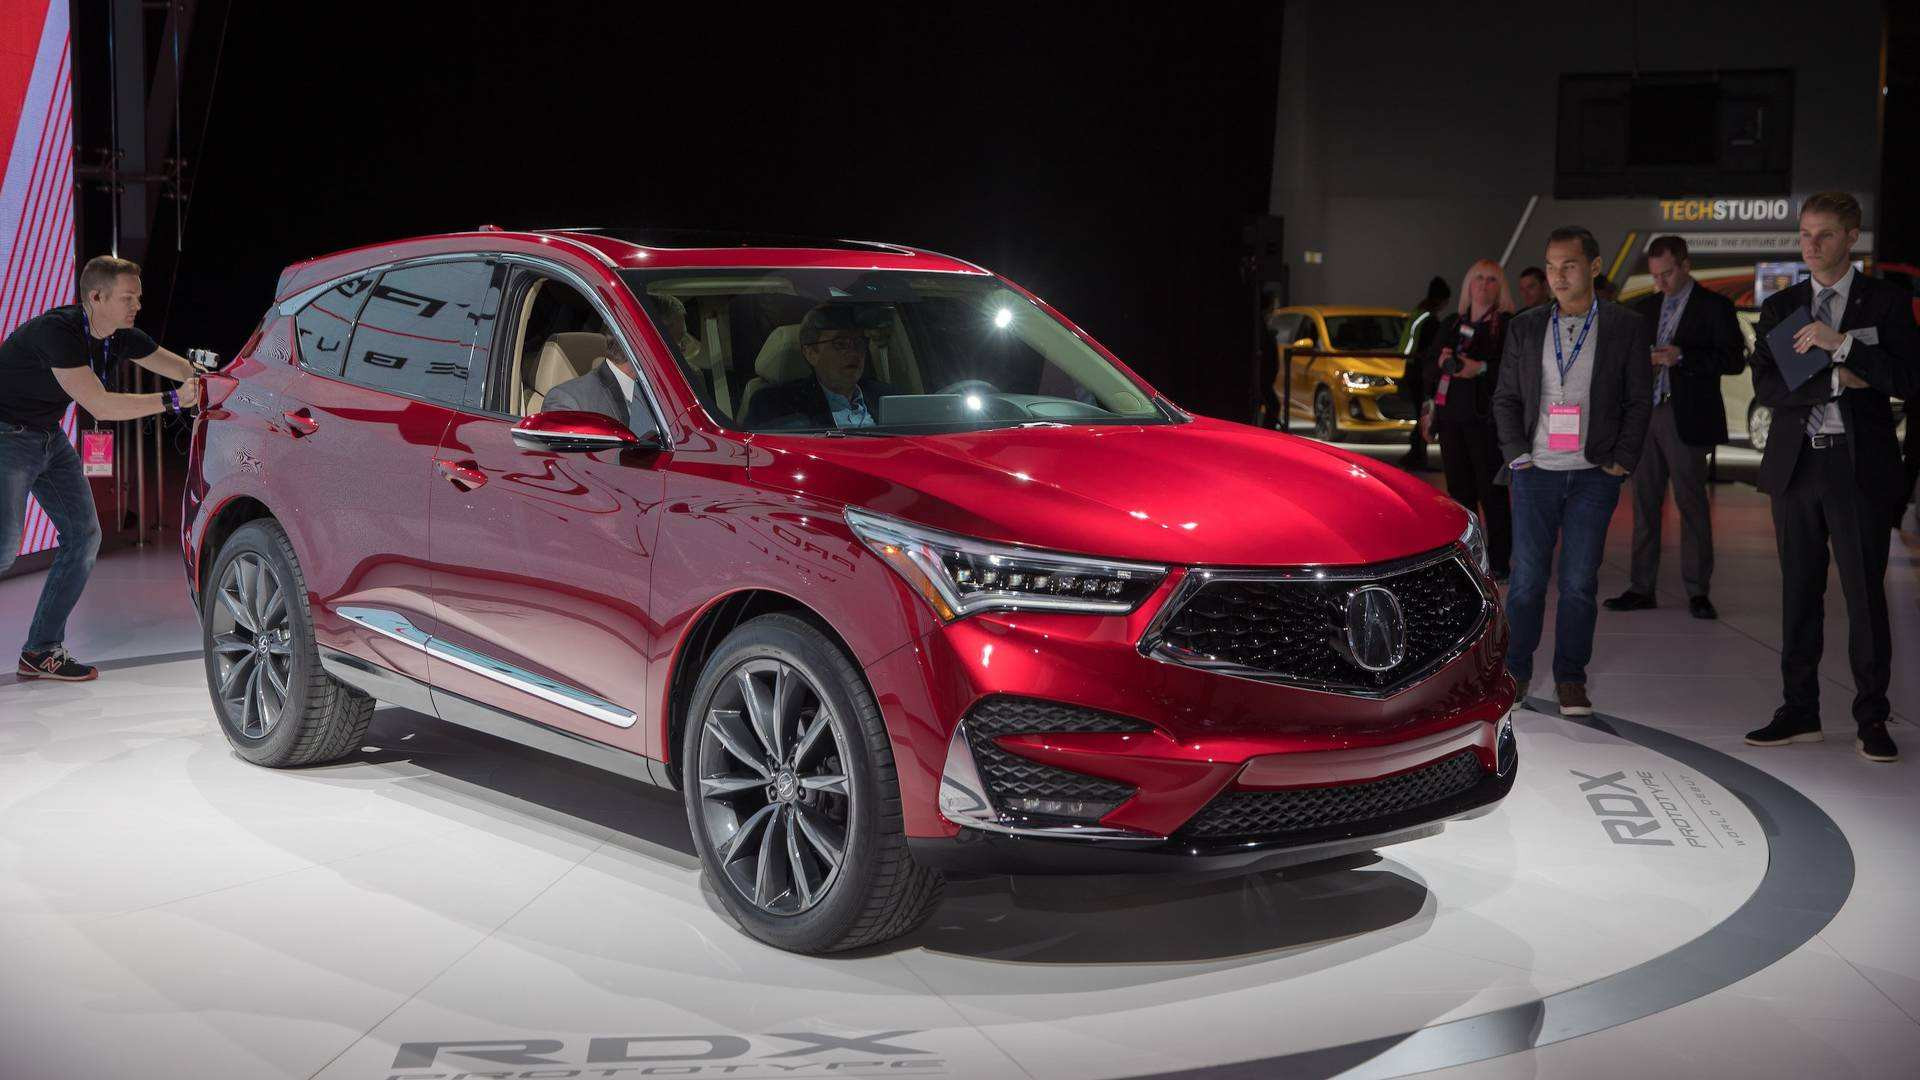 46 Best Review The Acura Rdx 2019 Release Date Usa Spy Shoot Exterior with The Acura Rdx 2019 Release Date Usa Spy Shoot